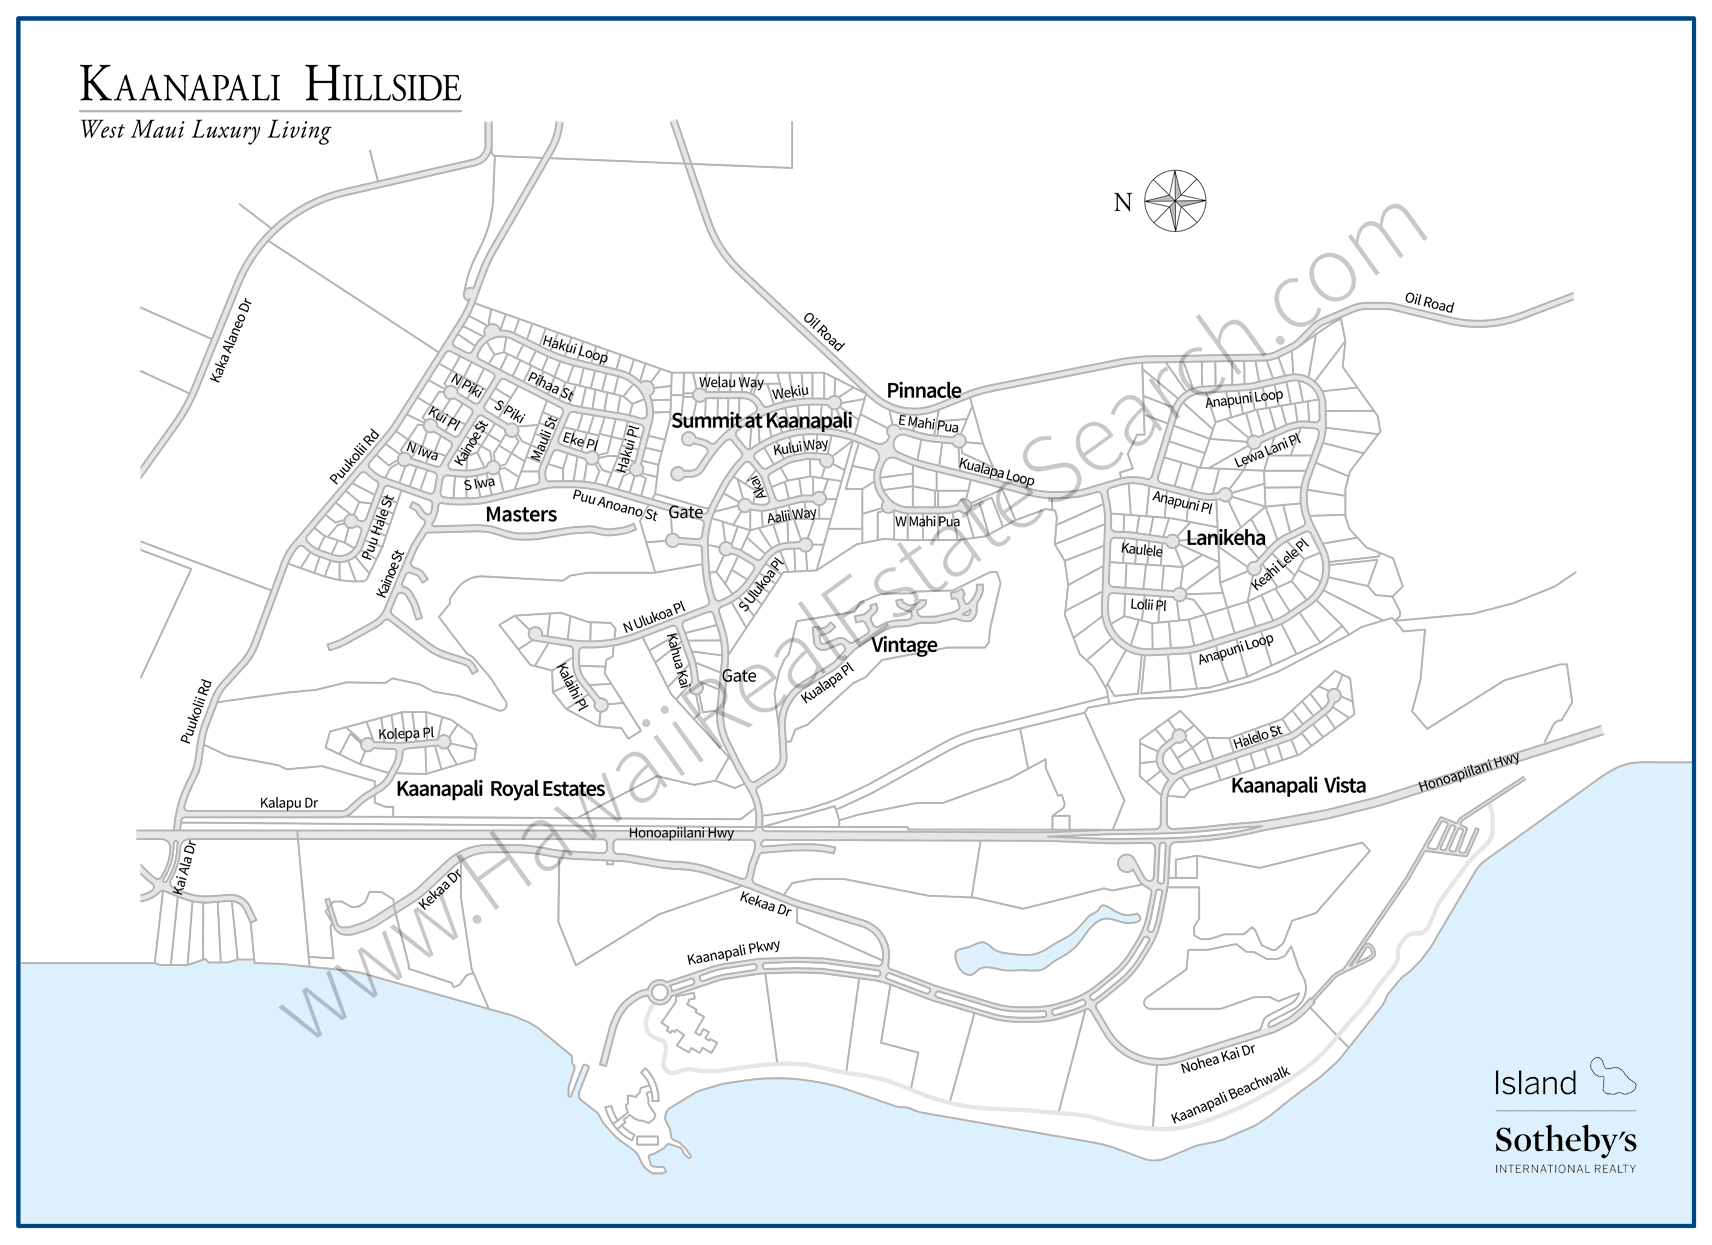 Kaanapali Hillside Area Map Updated